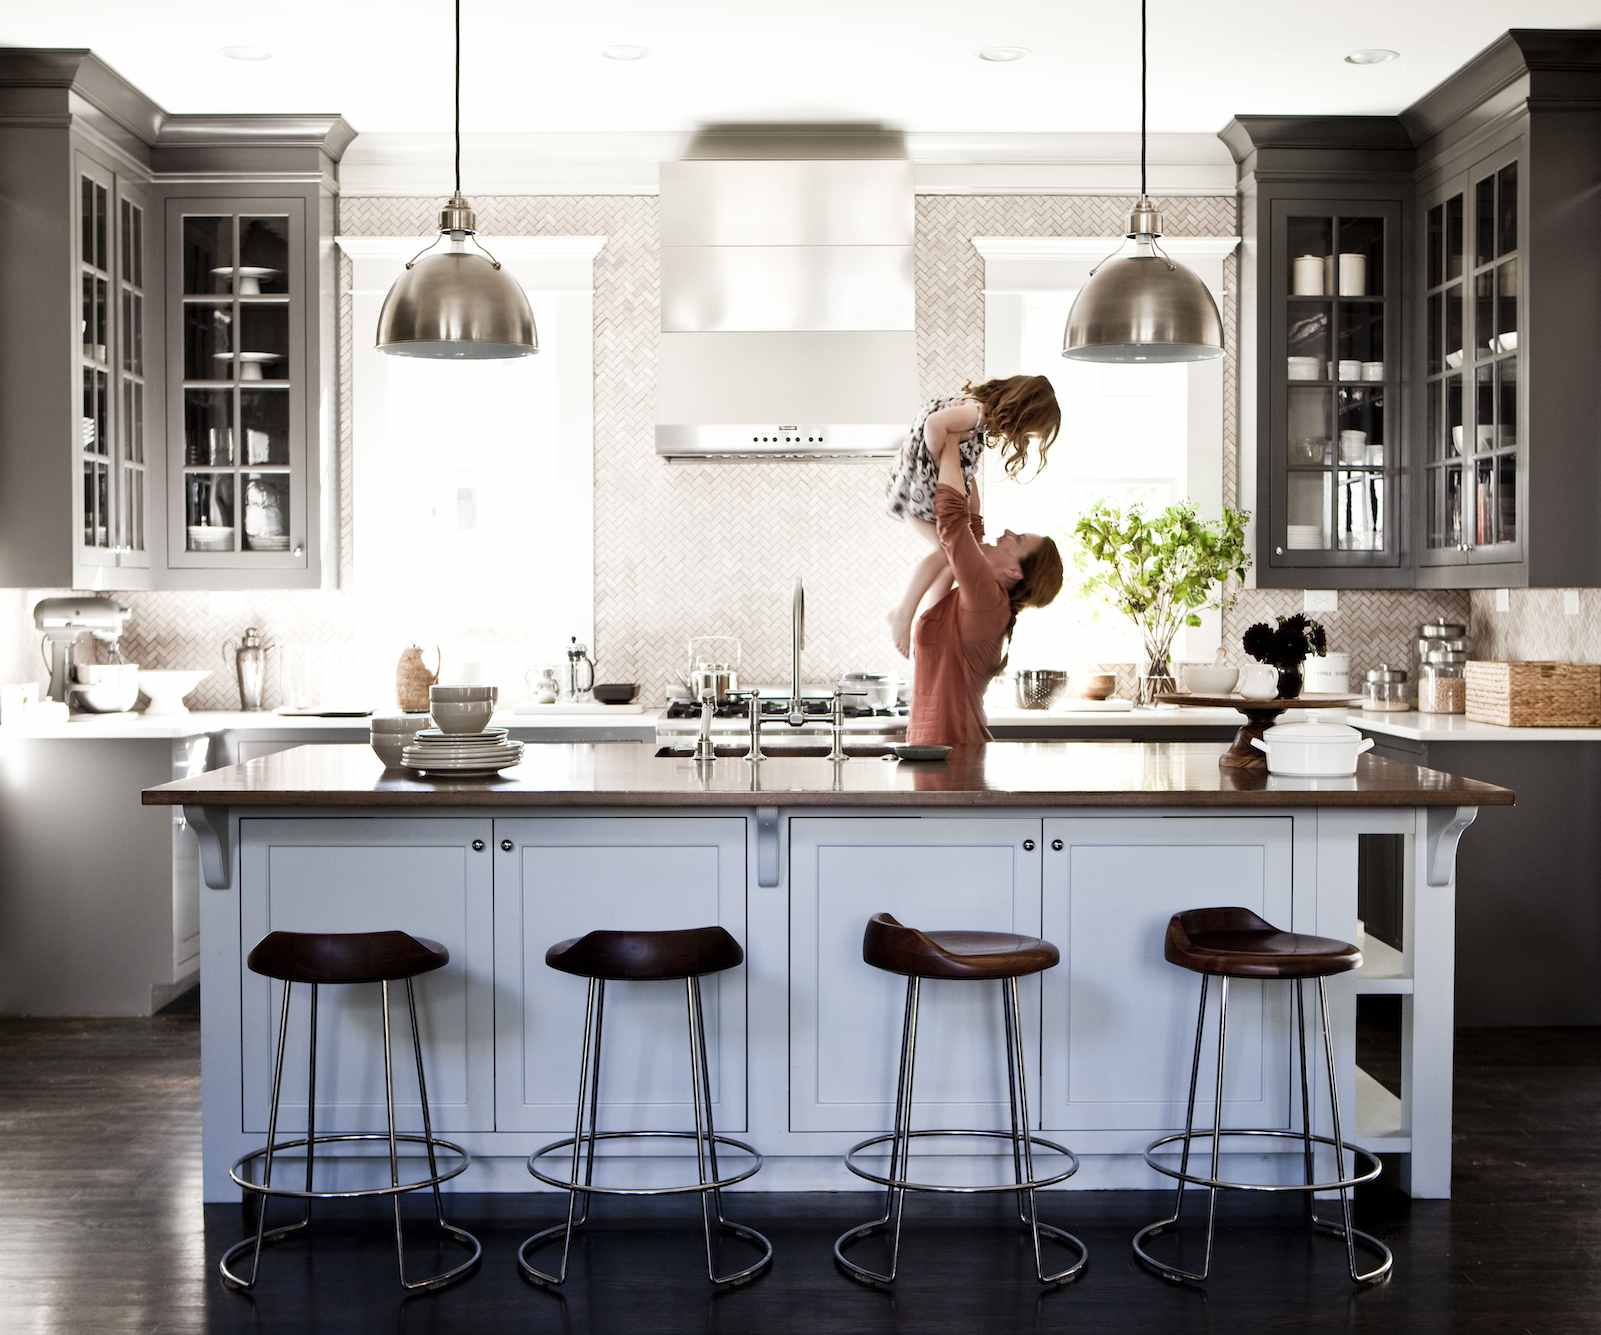 Woman lifting up her daughter in a kitchen with an island, four bar stools, and hanging pendant lights.